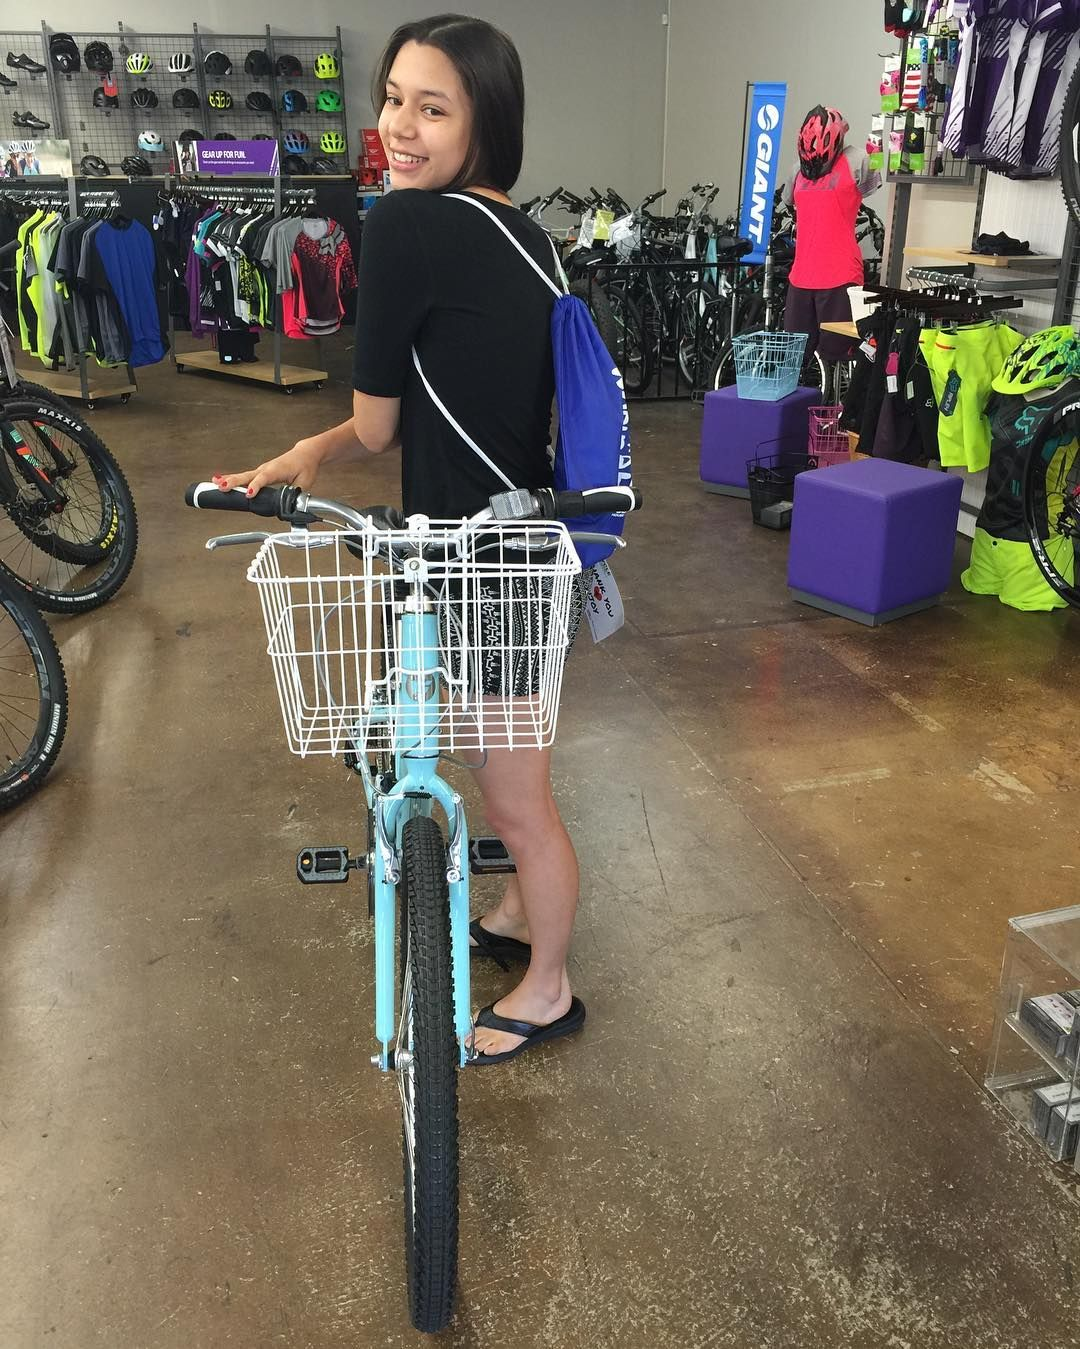 Rachael with her new Sedona and BW adventure bag #fitness #fun #bike #giantbikes